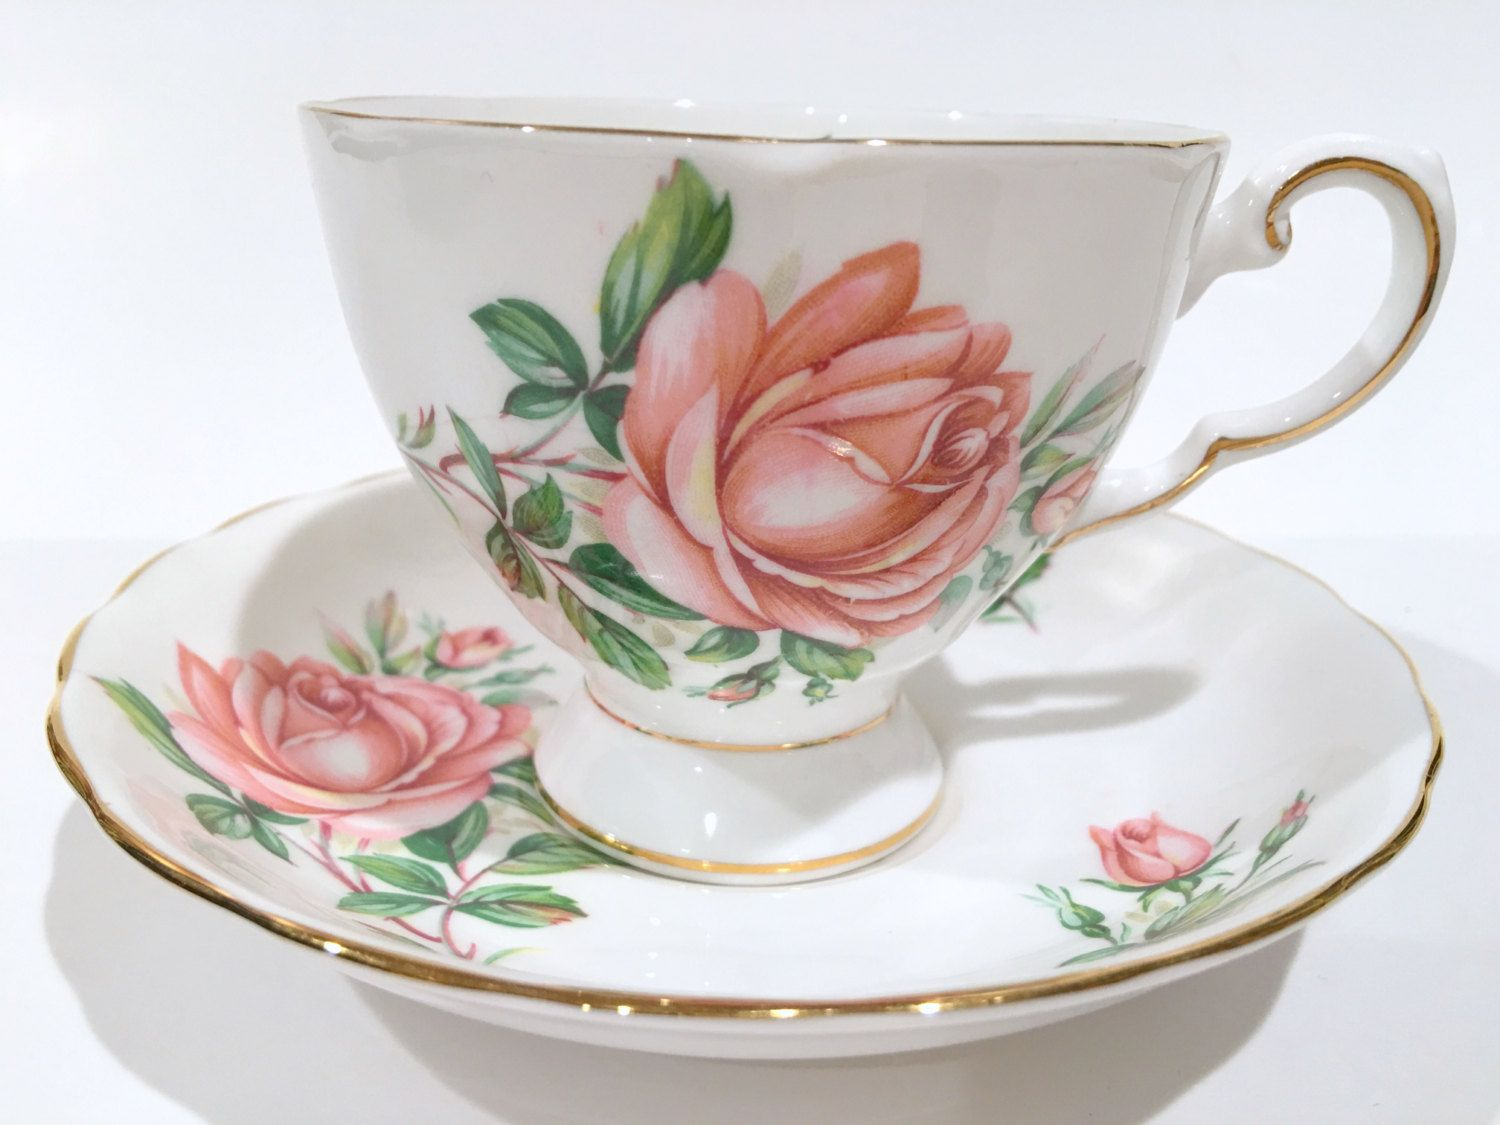 eed7e63f67 Tuscan Tea Cup and Saucer, Birthday Flowers, June Rose, Antique Teacups,  English Bone China Cups, English Teacups, Vintage Tea Cups, Tea Set by ...